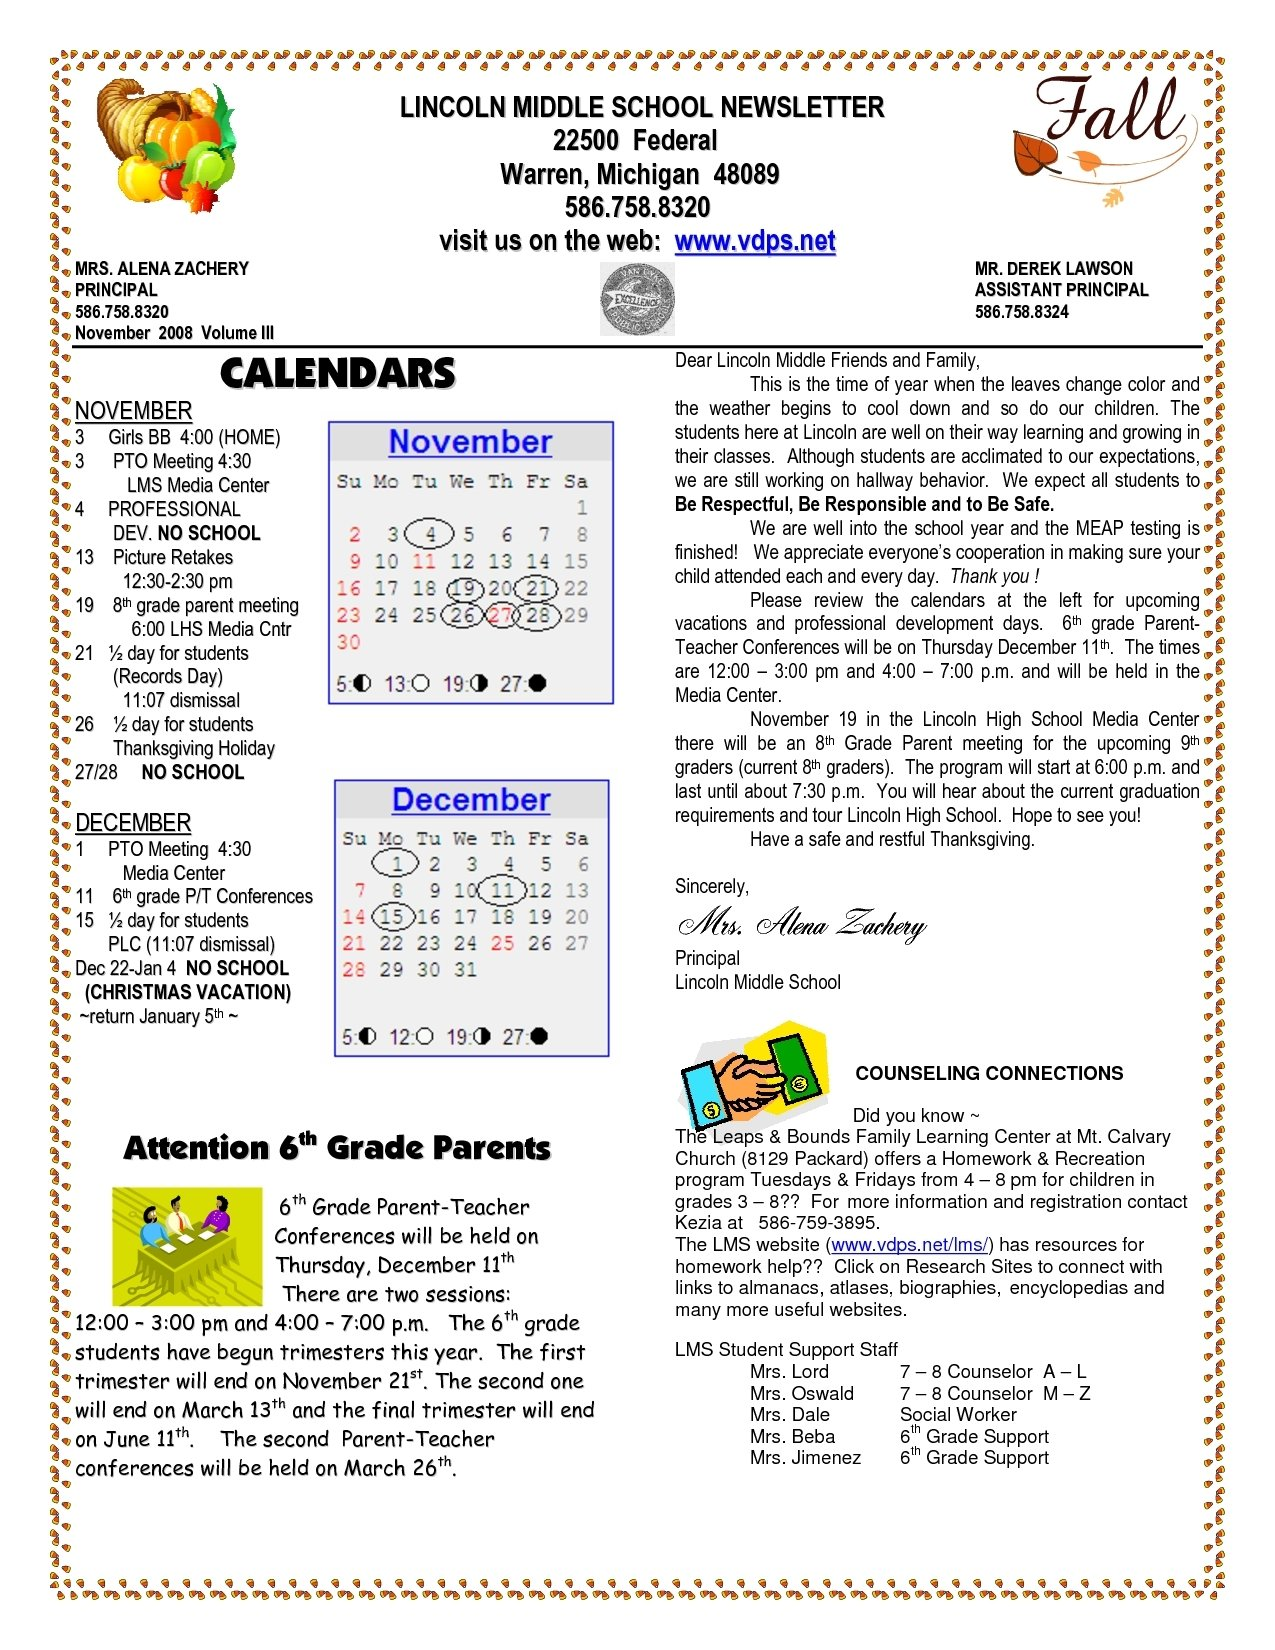 10 Attractive Middle School Newspaper Article Ideas school newsletter templates lincoln middle school newsletter 2021